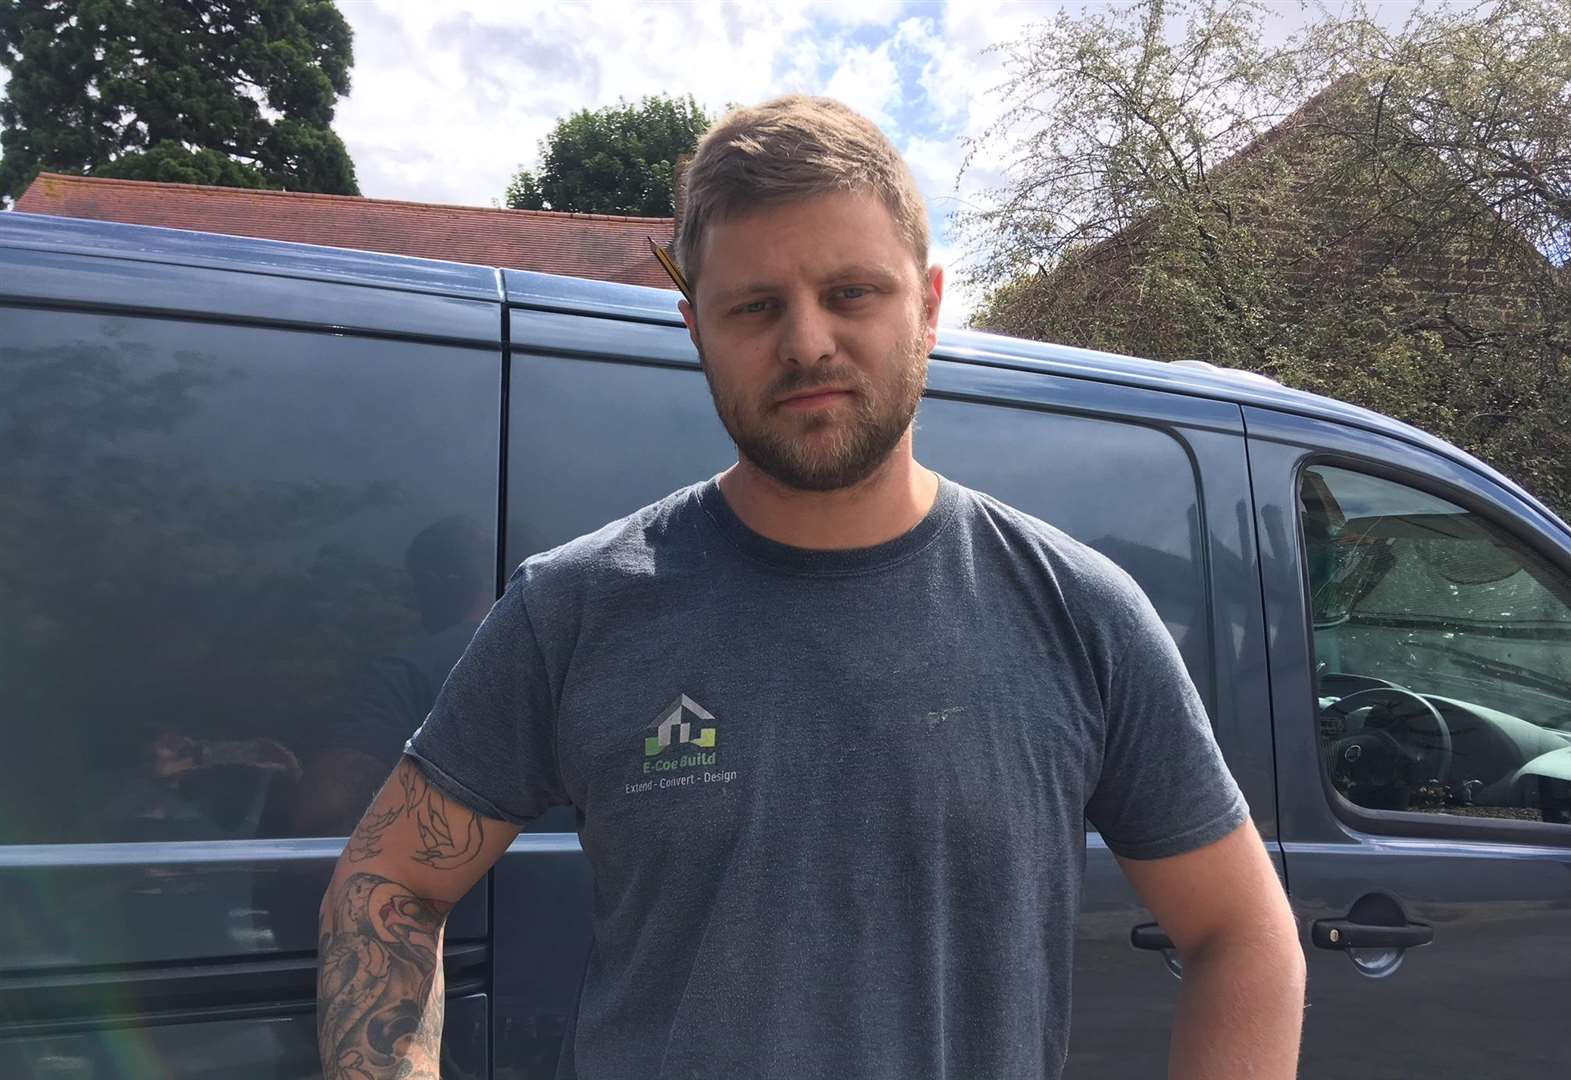 Thieves clear out builder's van